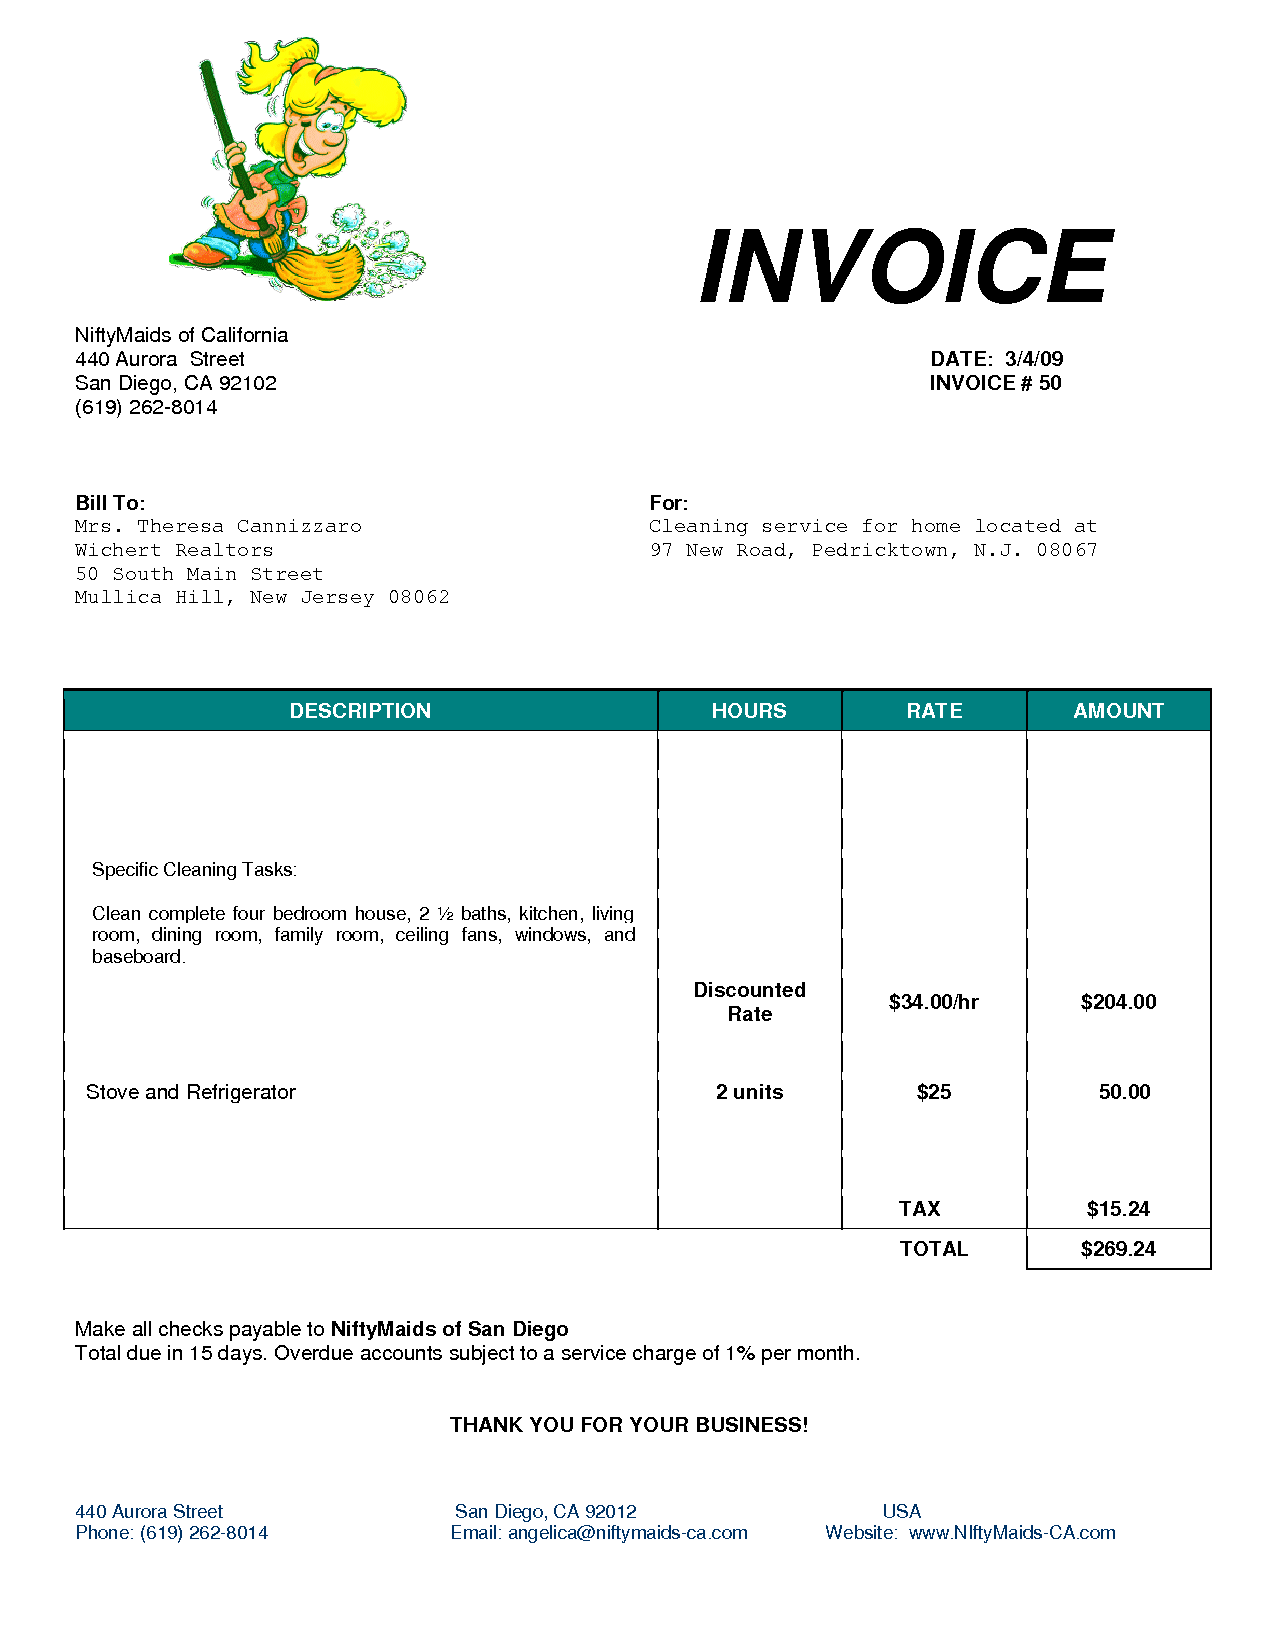 Send Receipt Gmail Cleaning Bill Invoice  Services Invoice  Ideas For The House  Auto Repair Invoice Program Excel with Delta Receipt Cleaning Bill Invoice  Services Invoice Free Invoice Template Downloads